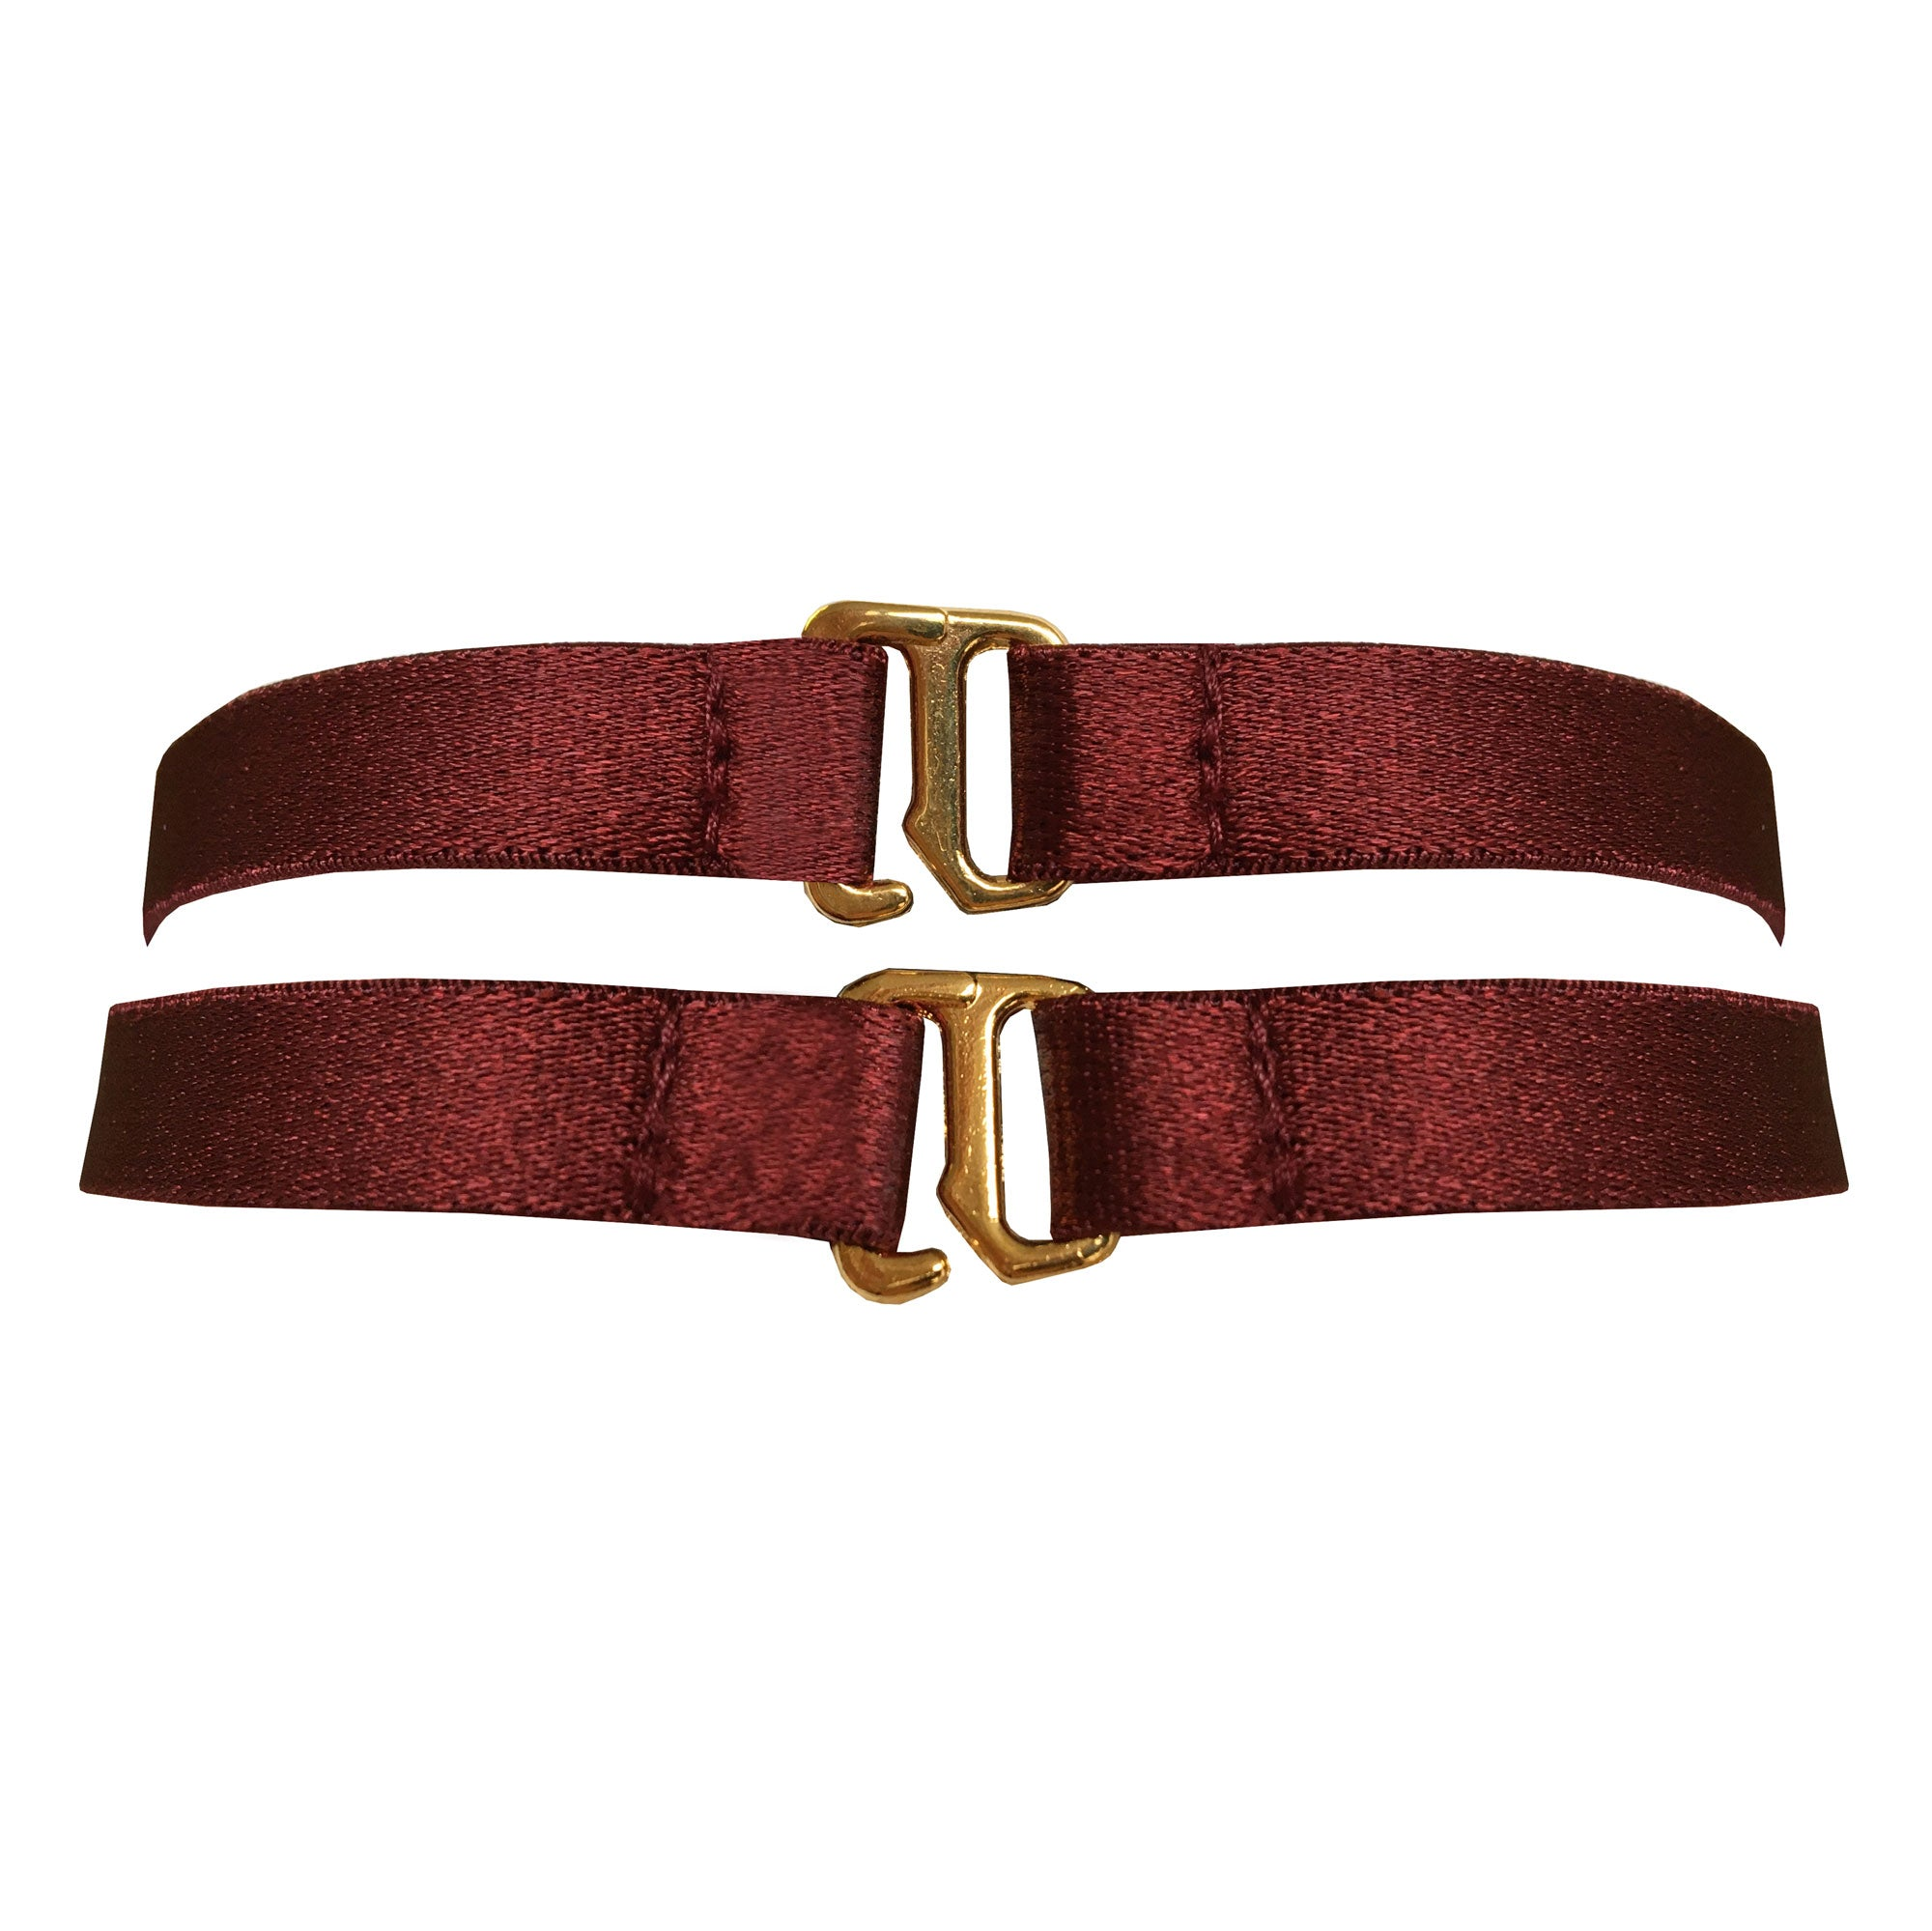 Bordelle Merida strap collar choker - morello burgundy